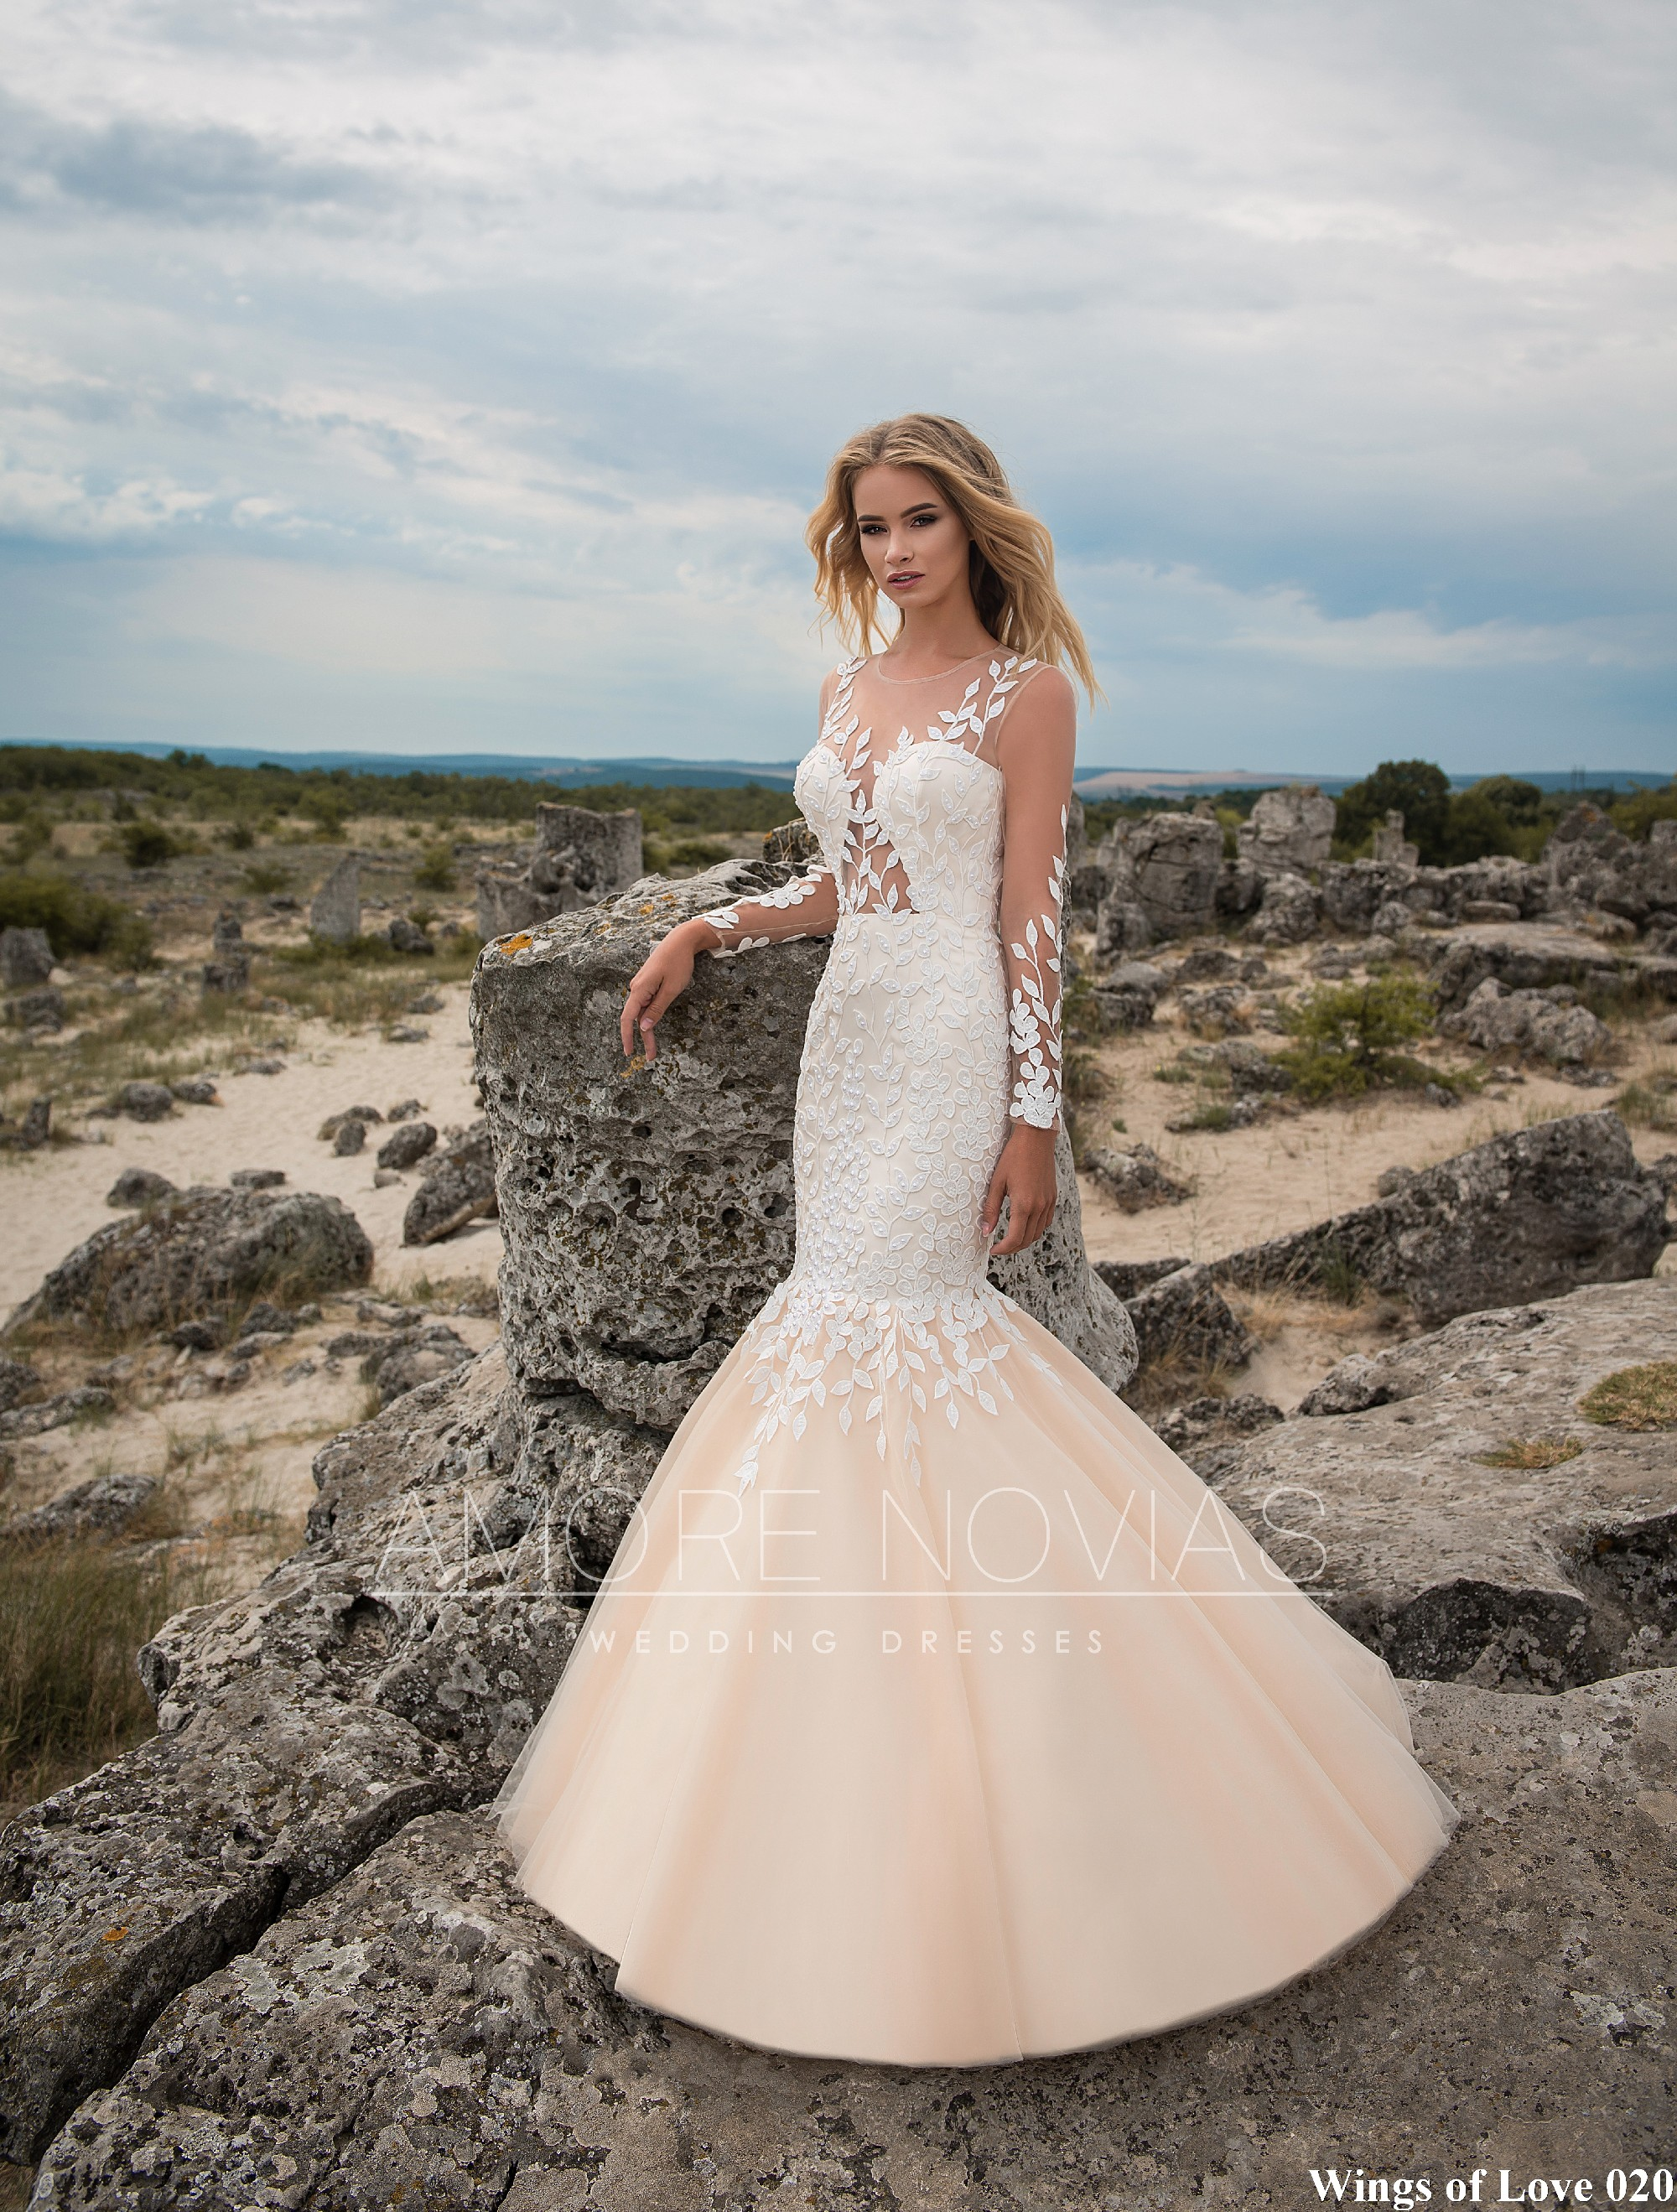 http://amore-novias.com/images/stories/virtuemart/product/lk-020-------(1).jpg